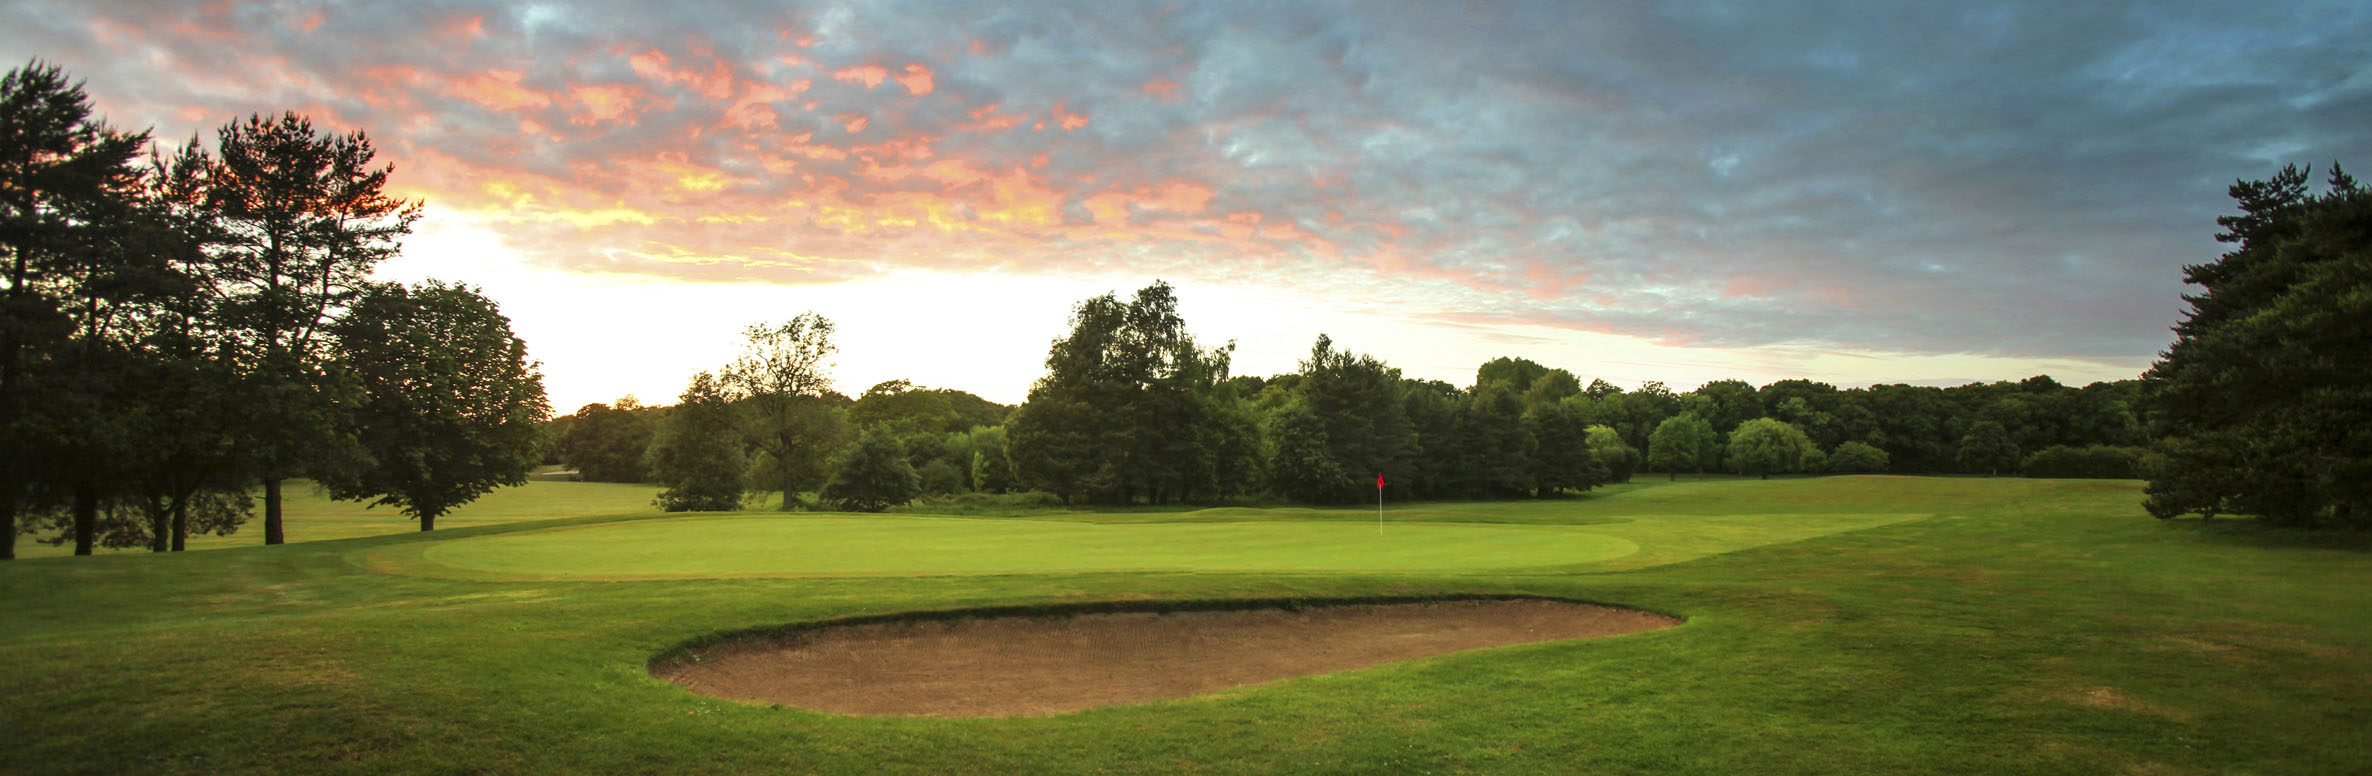 Golf Course Image - Meon Valley Golf Club No. 18